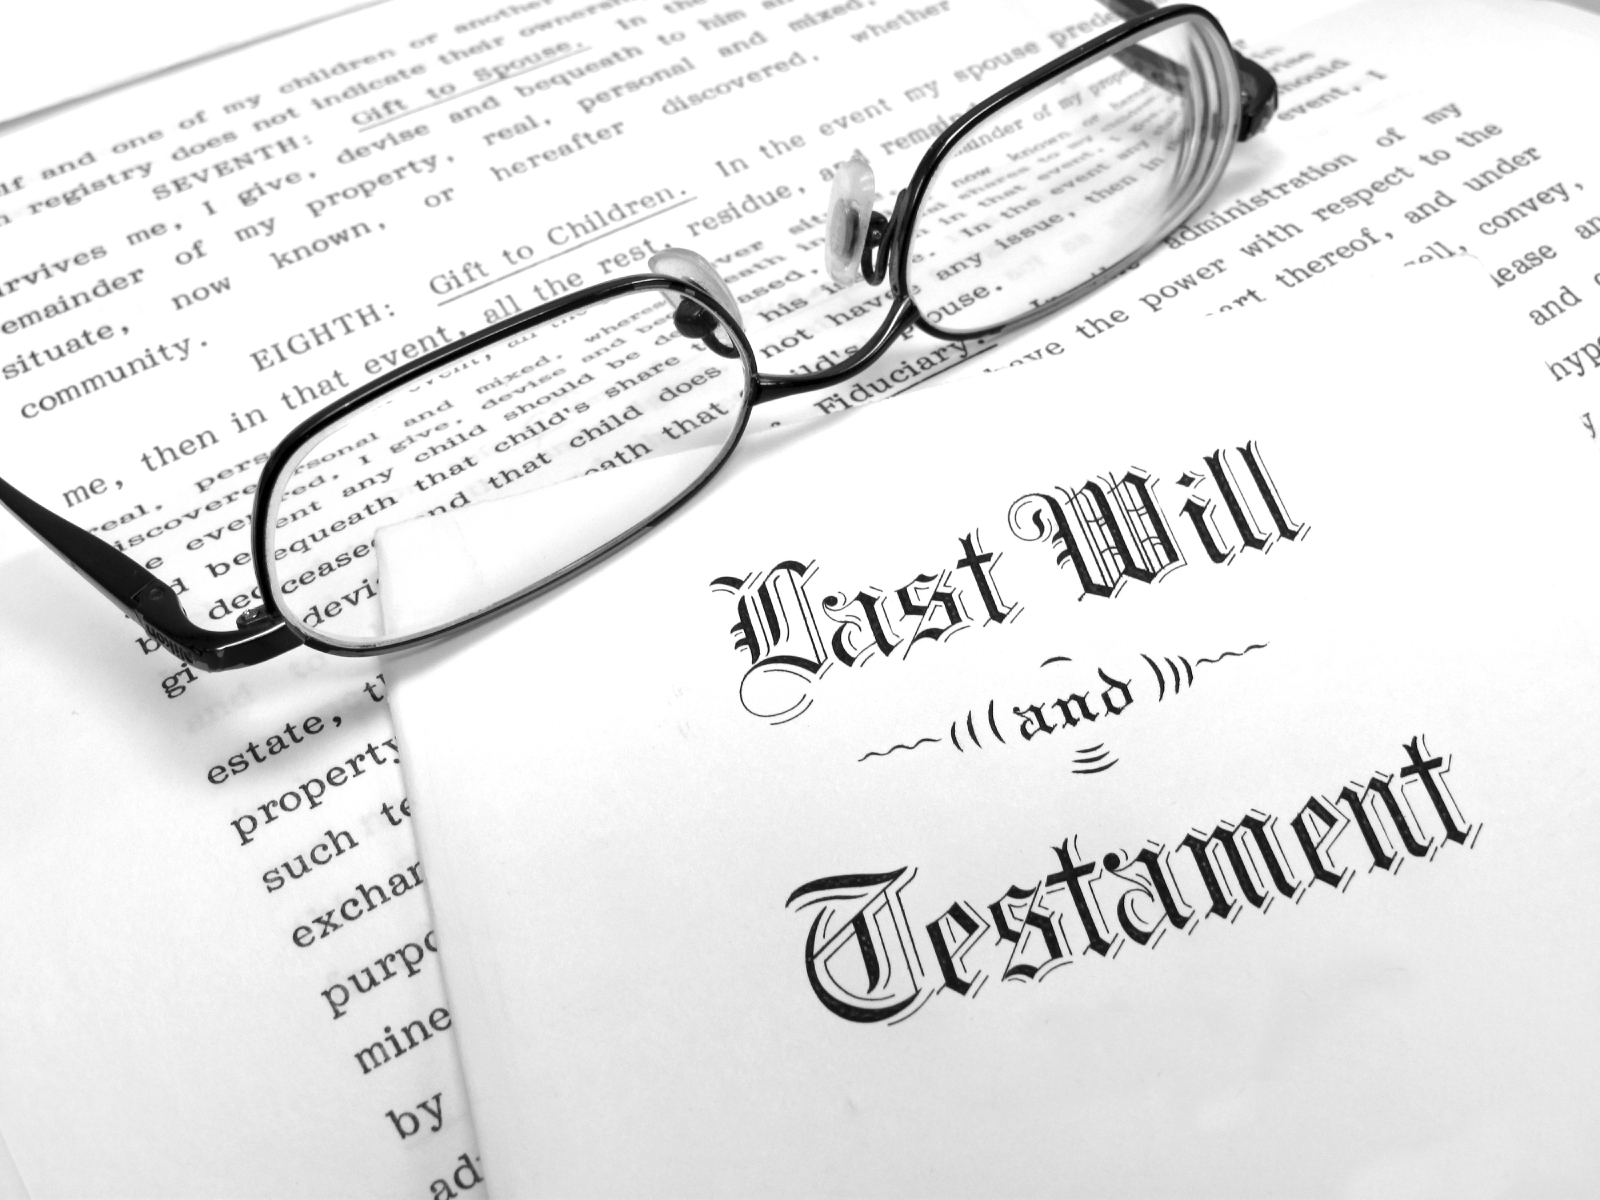 1 hour session with professional lawyer (Berard & Lovell) on making a will Image